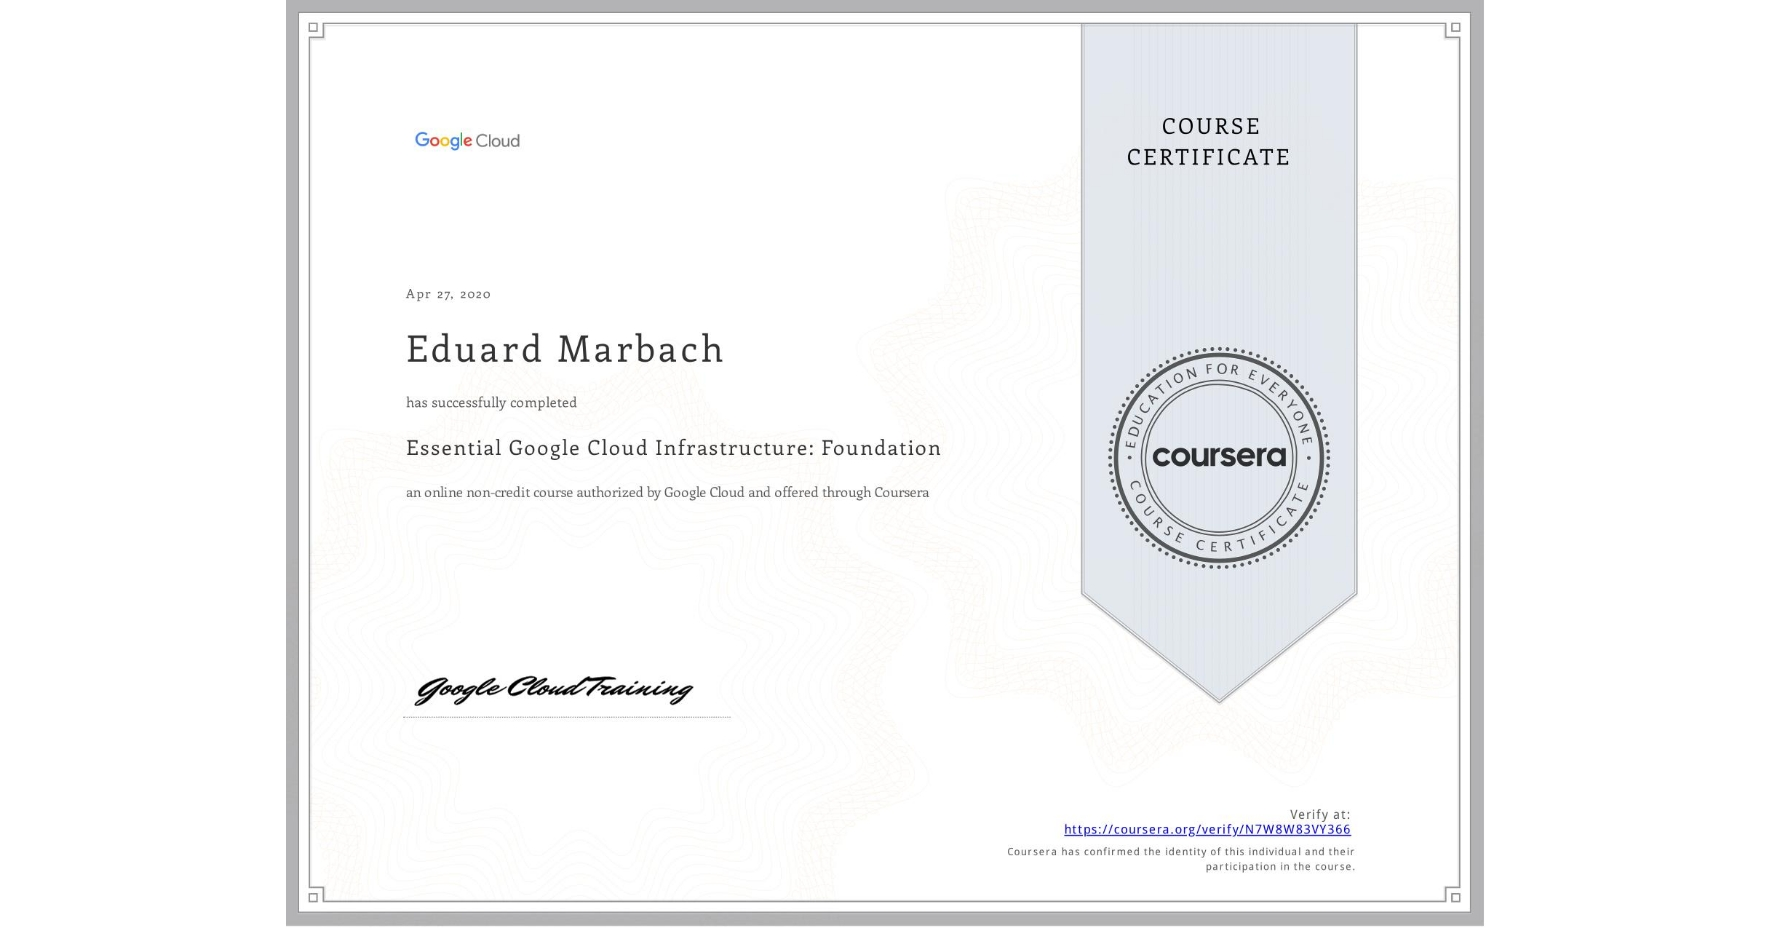 View certificate for Eduard Marbach, Essential Google Cloud Infrastructure: Foundation, an online non-credit course authorized by Google Cloud and offered through Coursera